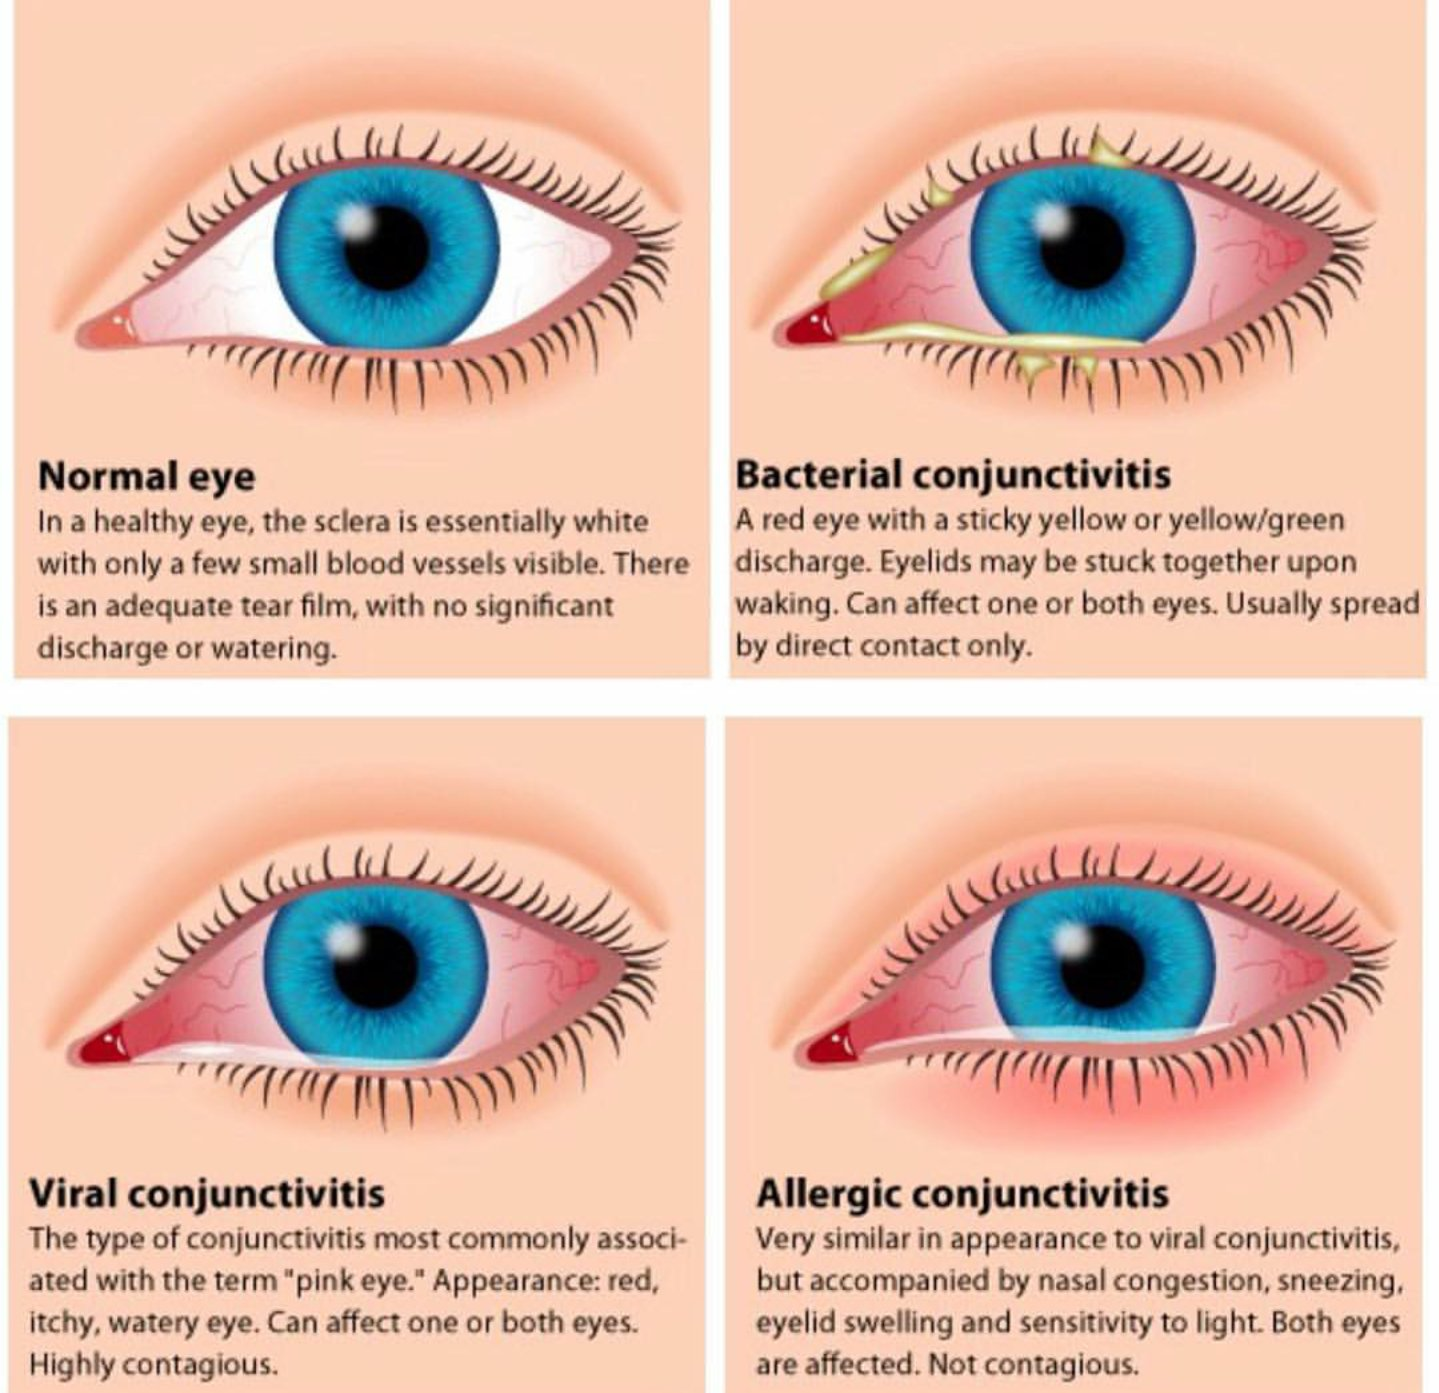 How to treat conjunctivitis without risk to health 28